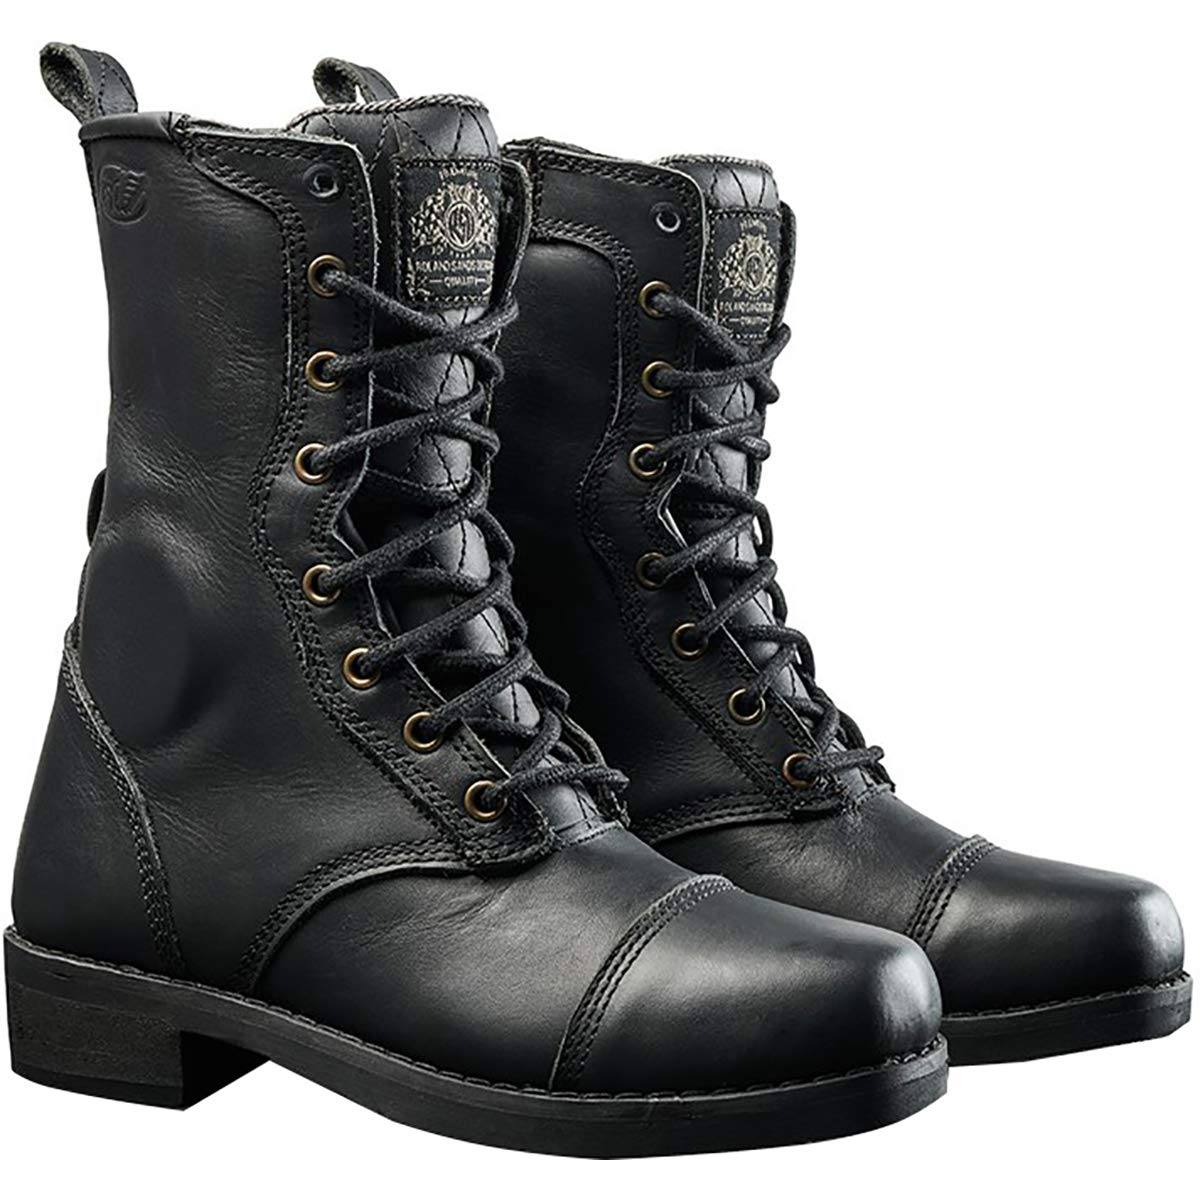 8 Tobacco Roland Sands Design Cajon Womens Street Motorcycle Boots